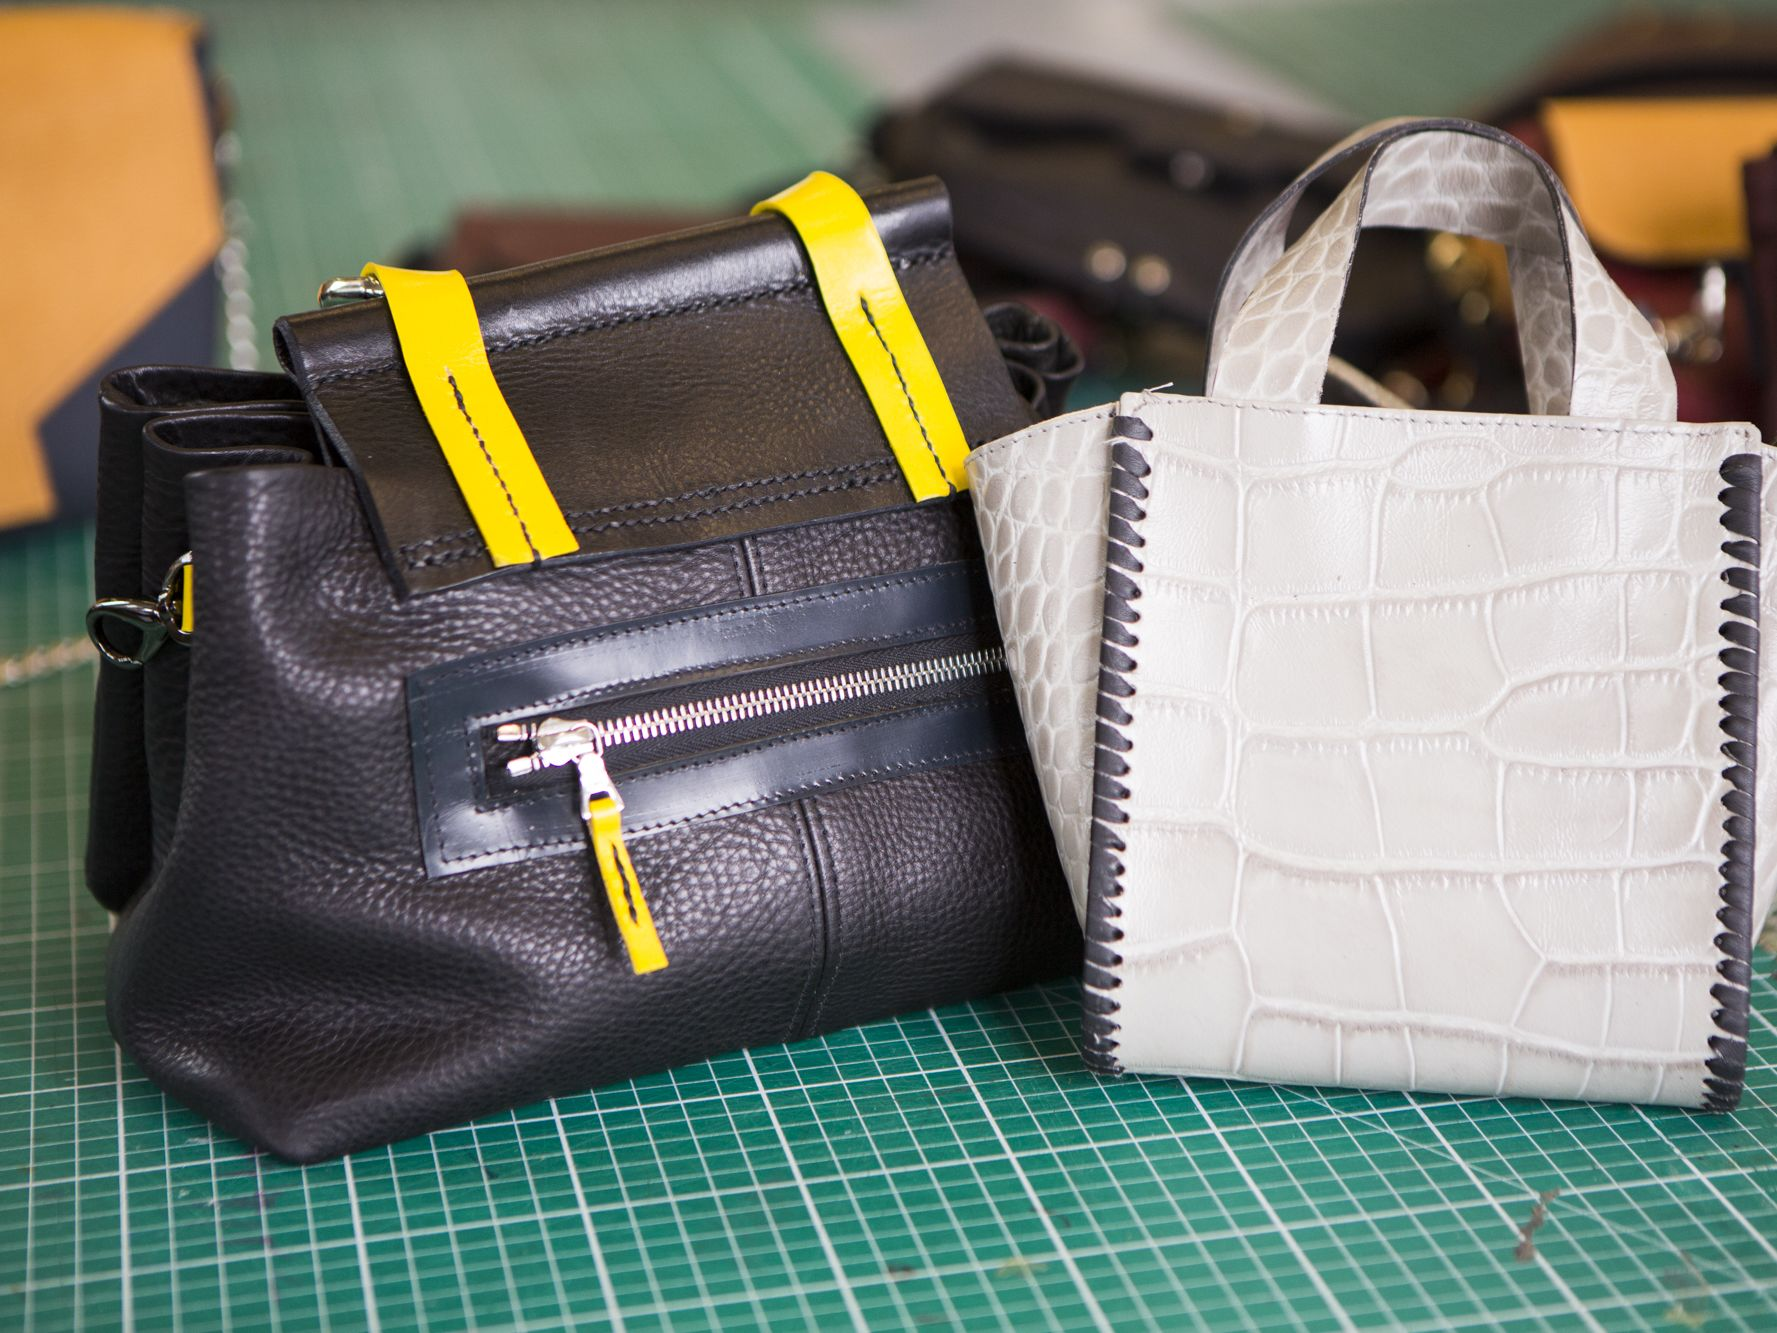 Handbags made by students